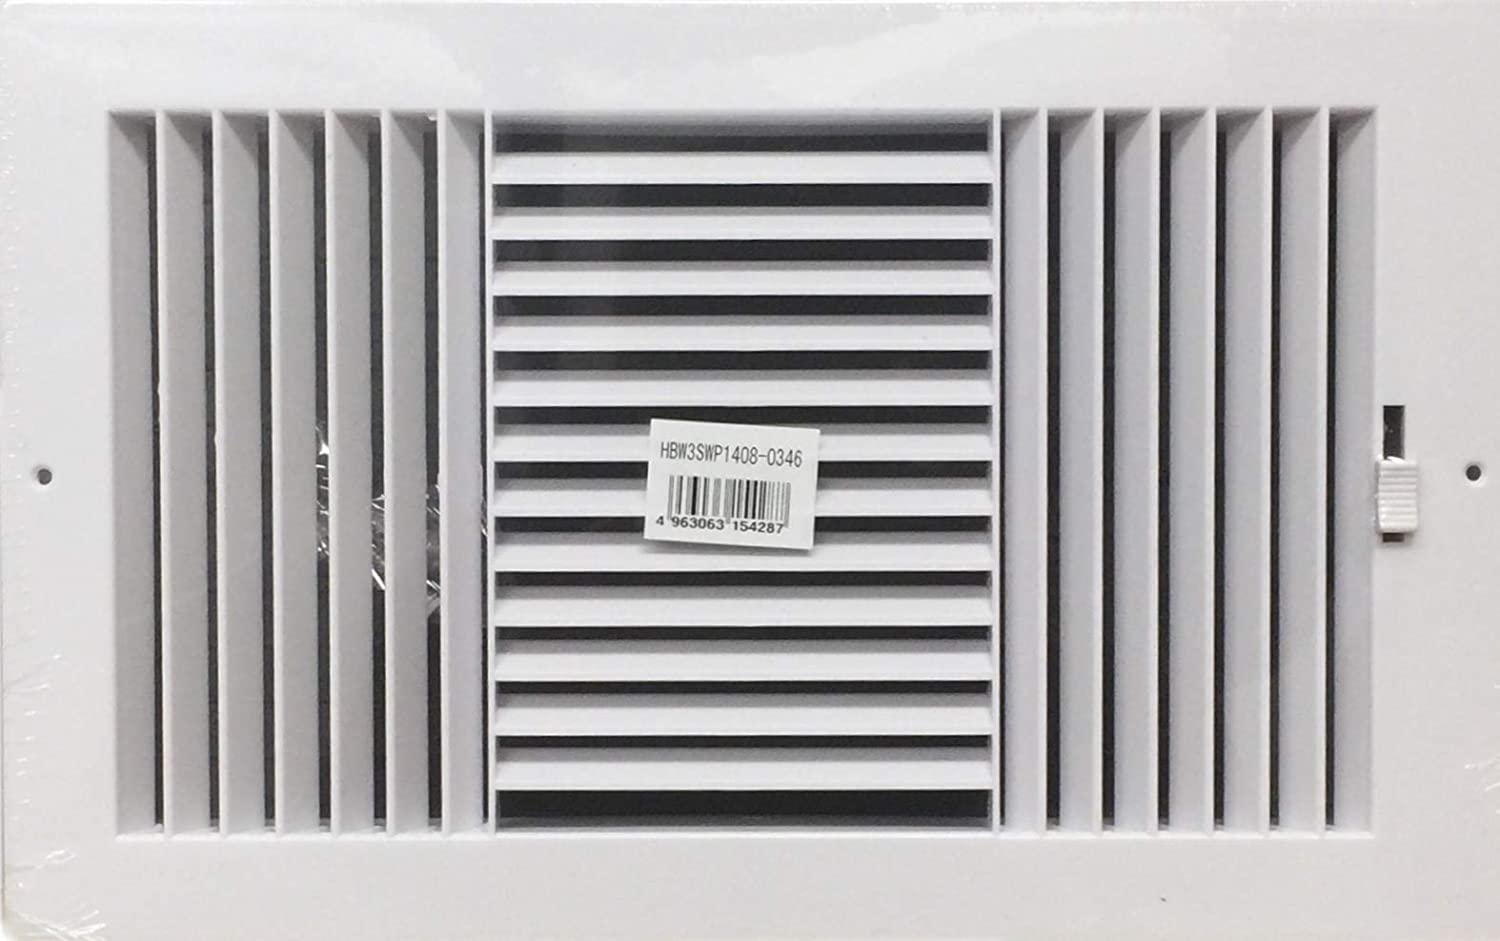 """Three-way plastic side wall/ceiling register in white 14""""w X 8""""h for duct opening (outside dimension is 16""""w X 10""""h)"""